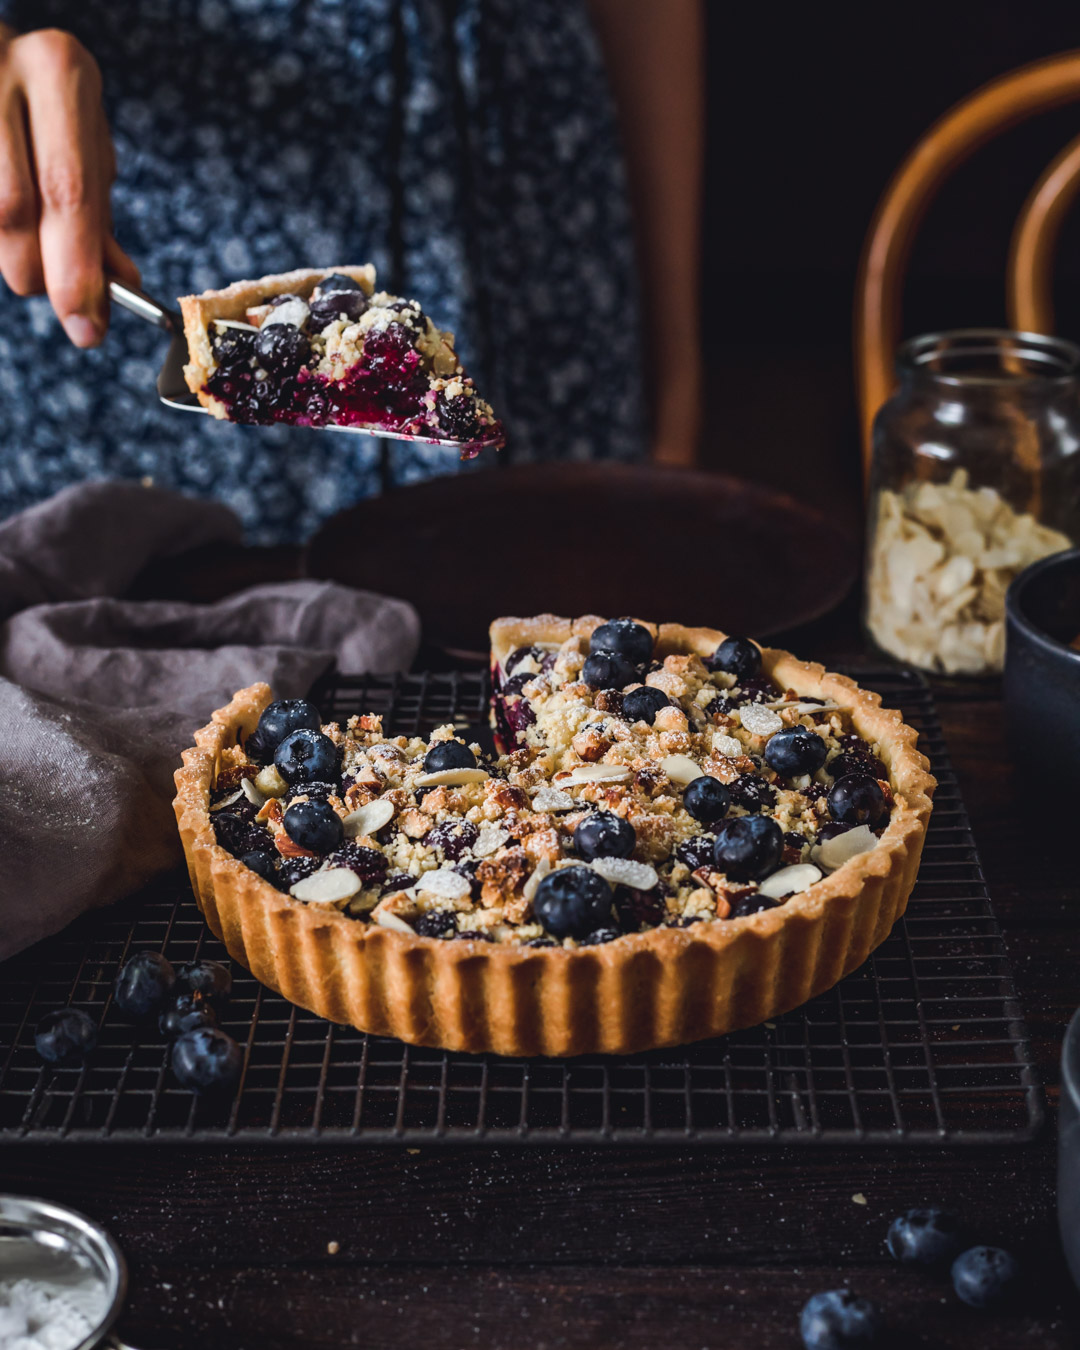 Vegan Blueberry Tart with Crumble